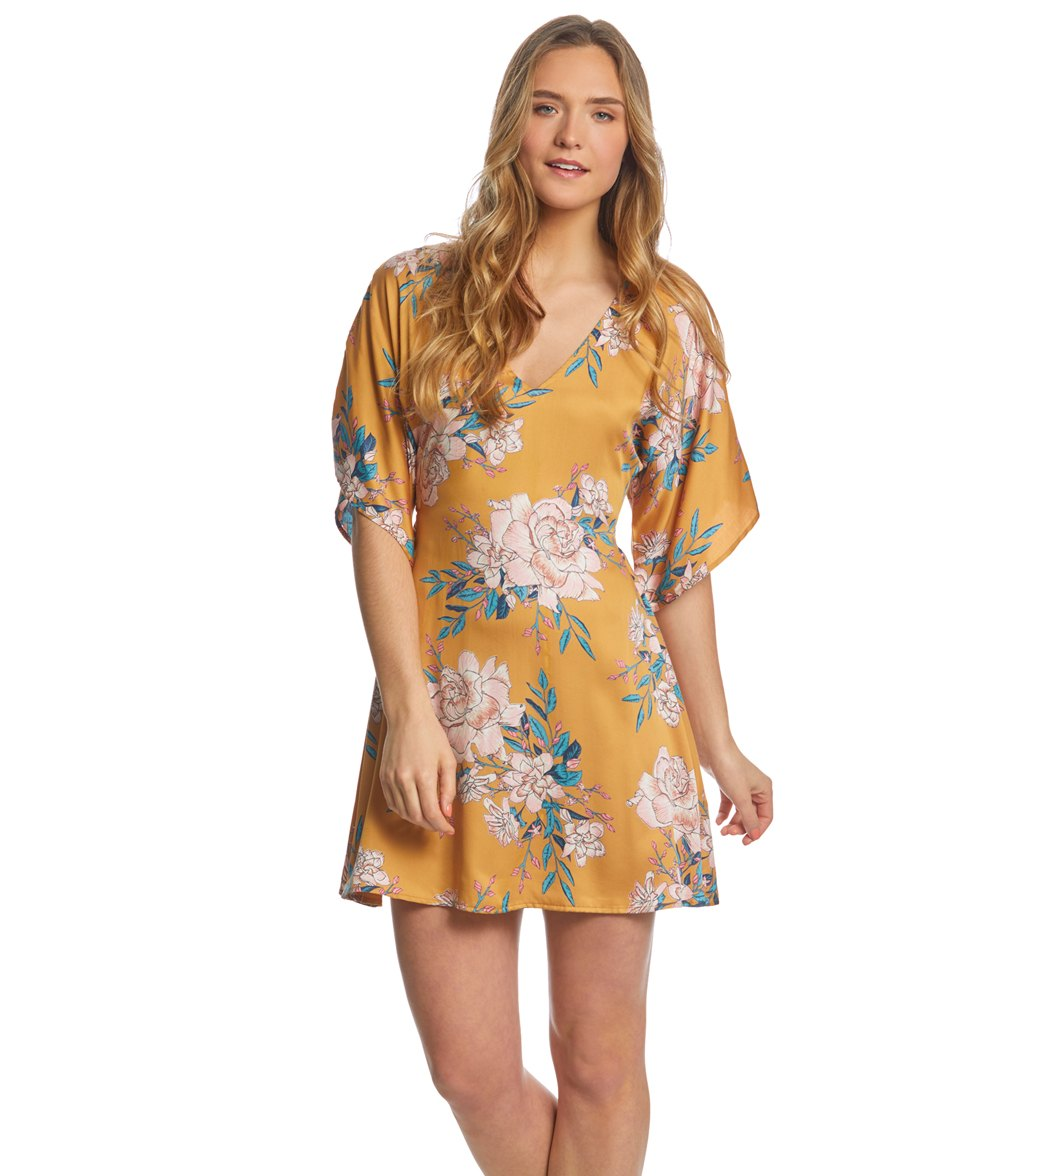 6e3fa86a28 Billabong Golden Light Dress at SwimOutlet.com - Free Shipping